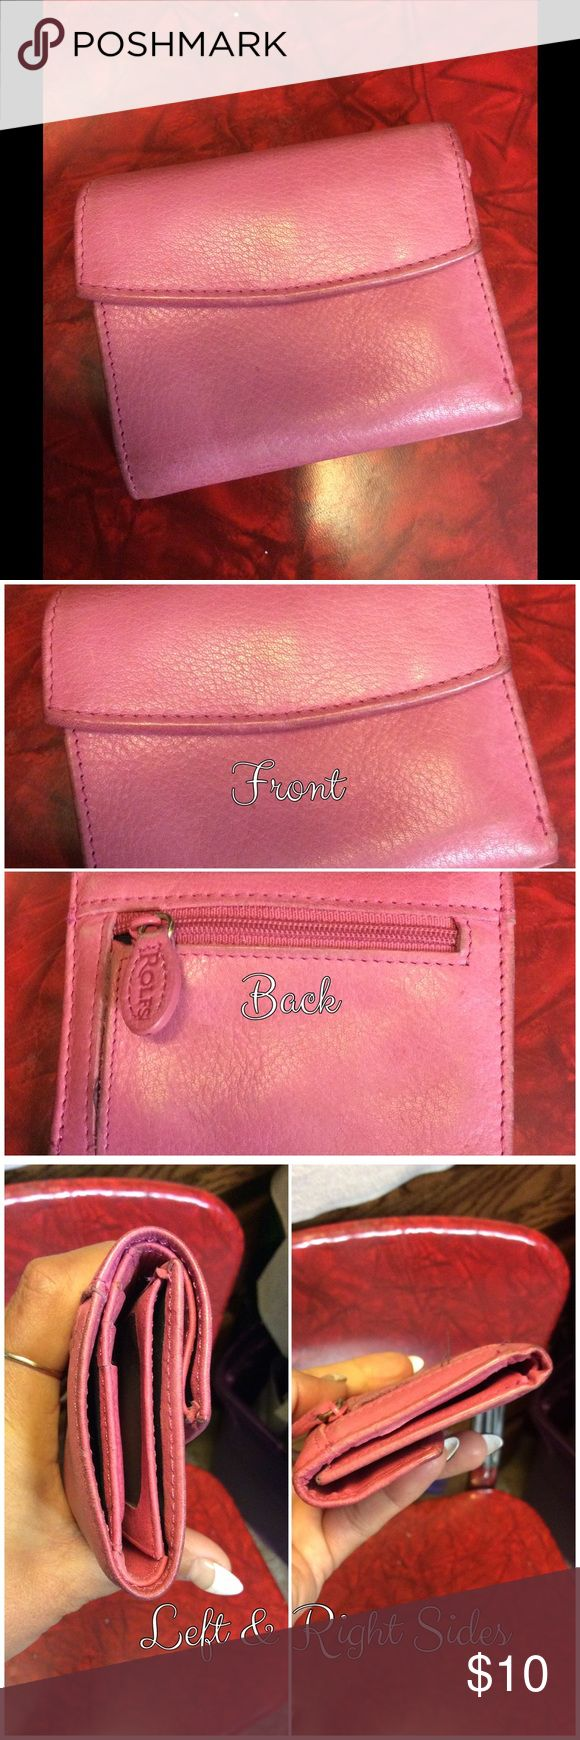 Rolf's Wallet Pink leather billfold. Gently used. Some discoloration here & there. Please ask all questions before purchasing. Rolf's Bags Wallets